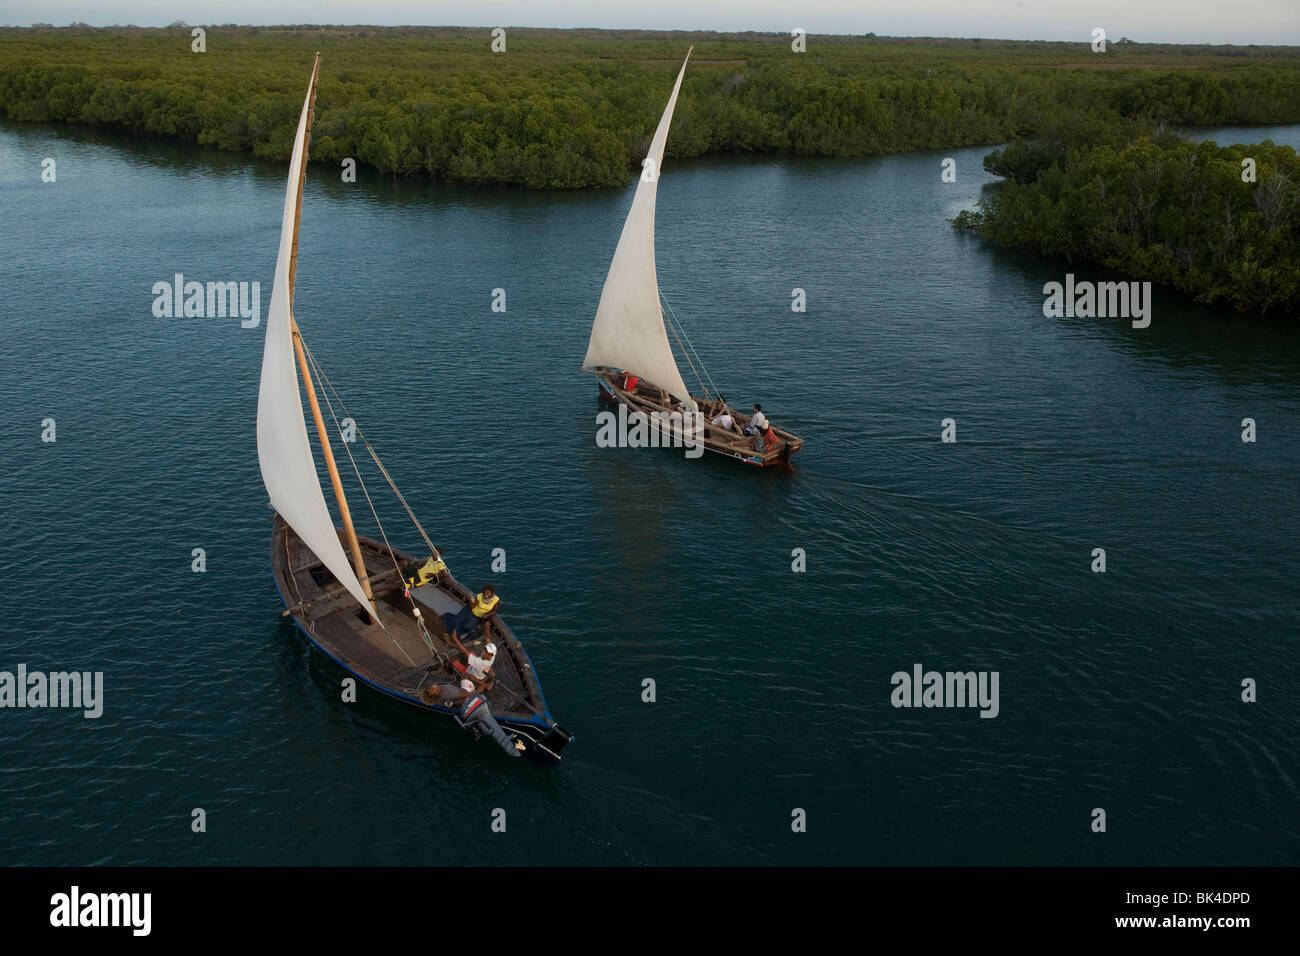 Dhows sail close to the mangrove channels of Manda island on October 9, 2009, Kenya. - Stock Image